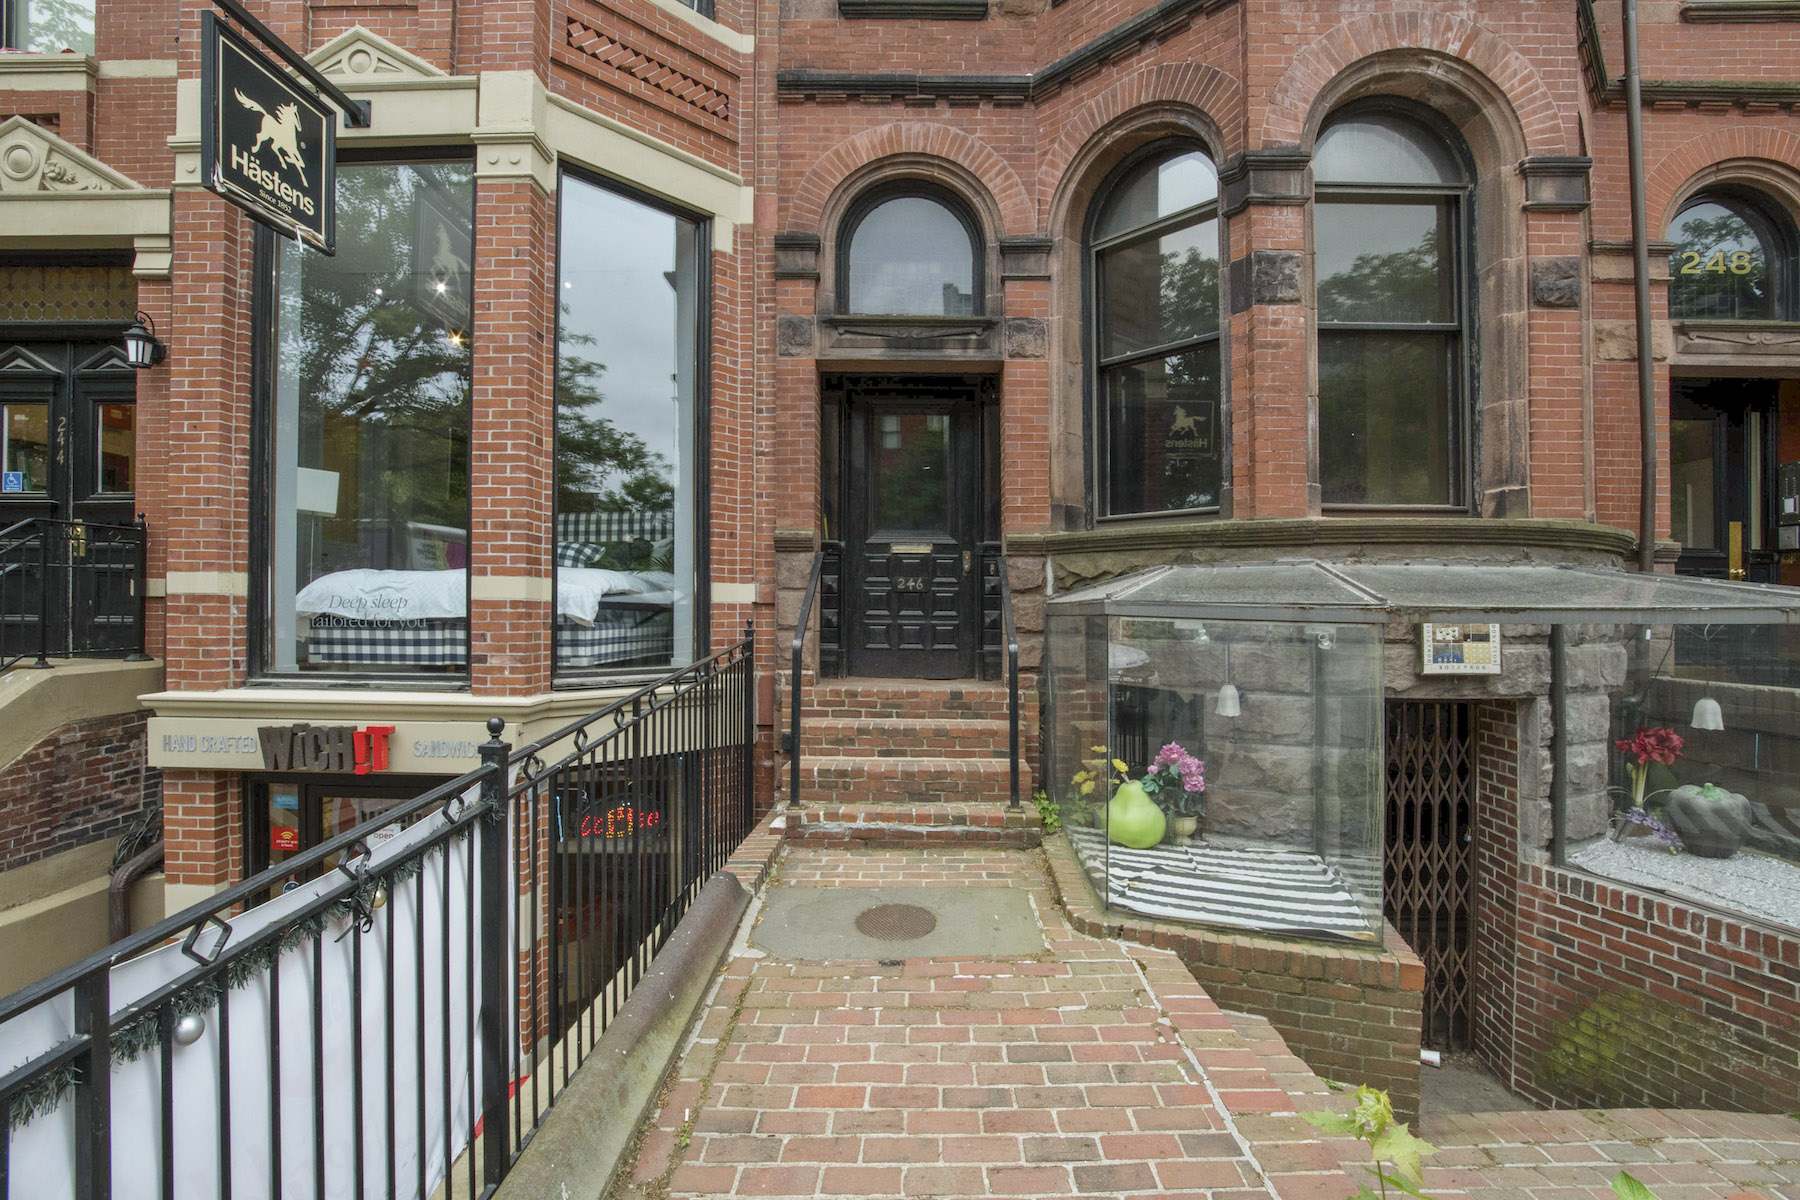 por un Venta en Rare Opportunity To Purchase This Mixed Use Newbury Street Brownstone 246 Newbury Street Boston, Massachusetts 02116 Estados Unidos